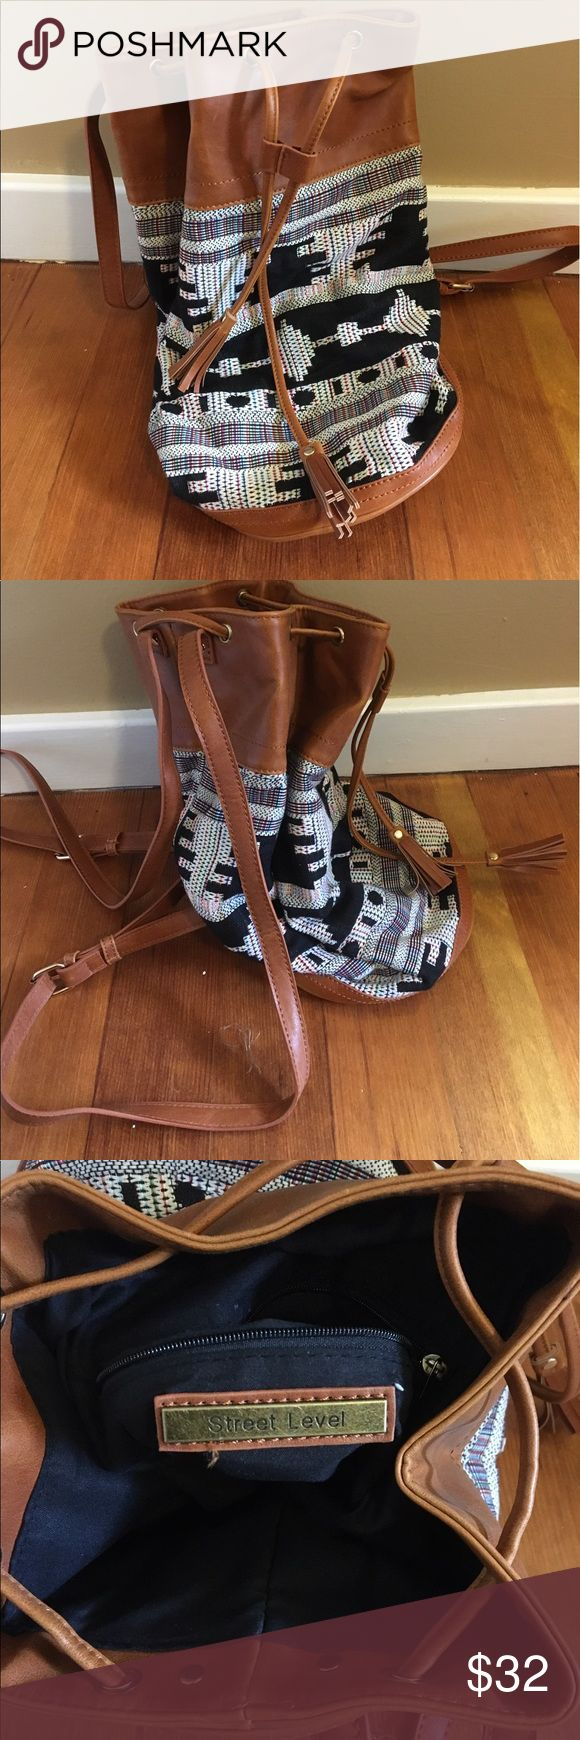 Urban Style Bag Adorable backpack with brown leather and an urban print. Great for festival season and summer! Never used/worn Bags Backpacks